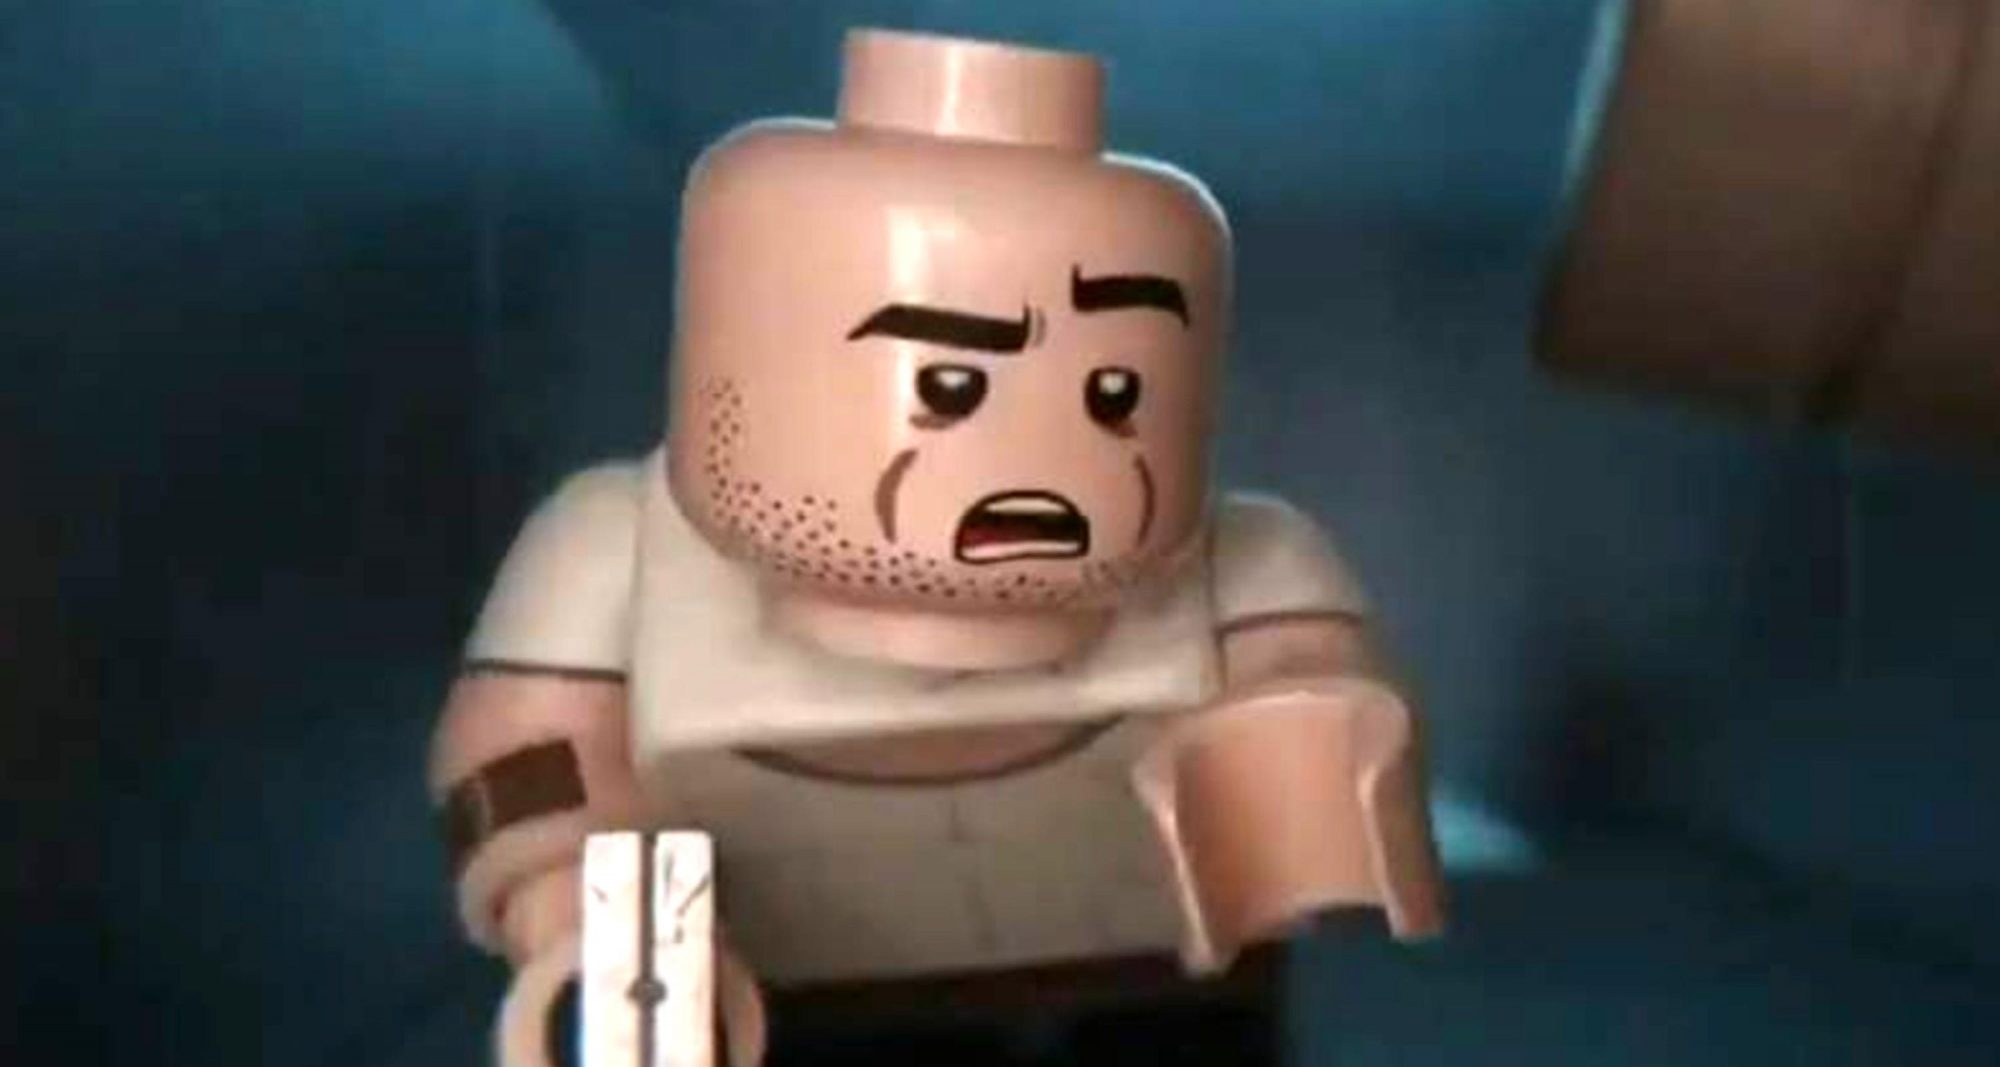 Bruce Willis, The LEGO Movie 2: The Second Part